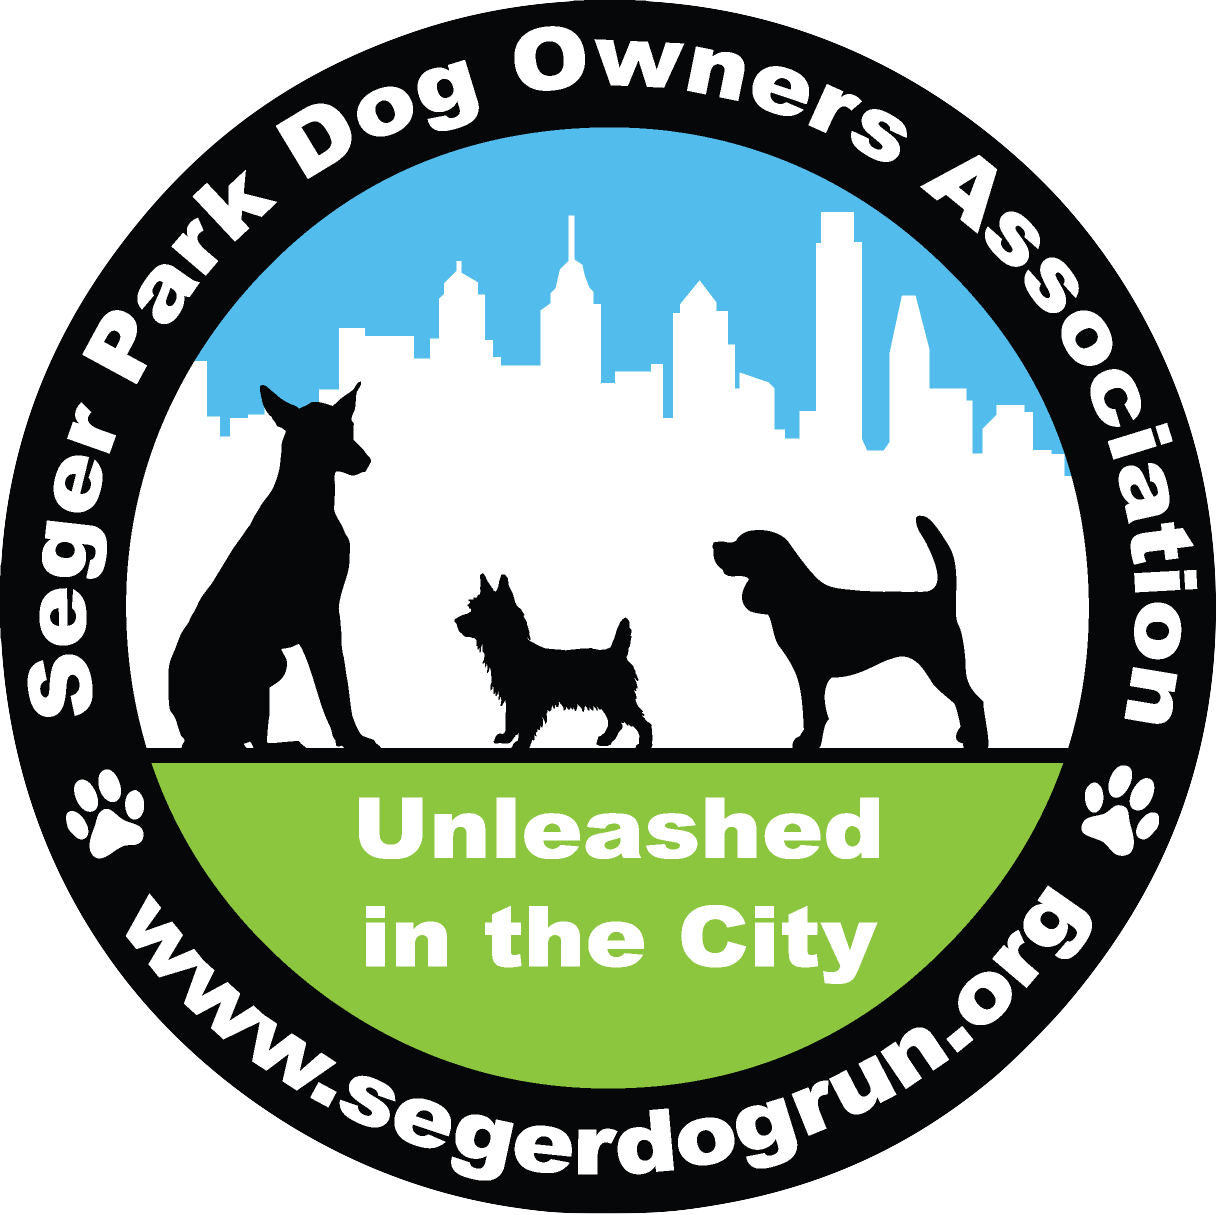 Seger Park Dog Owner's Association